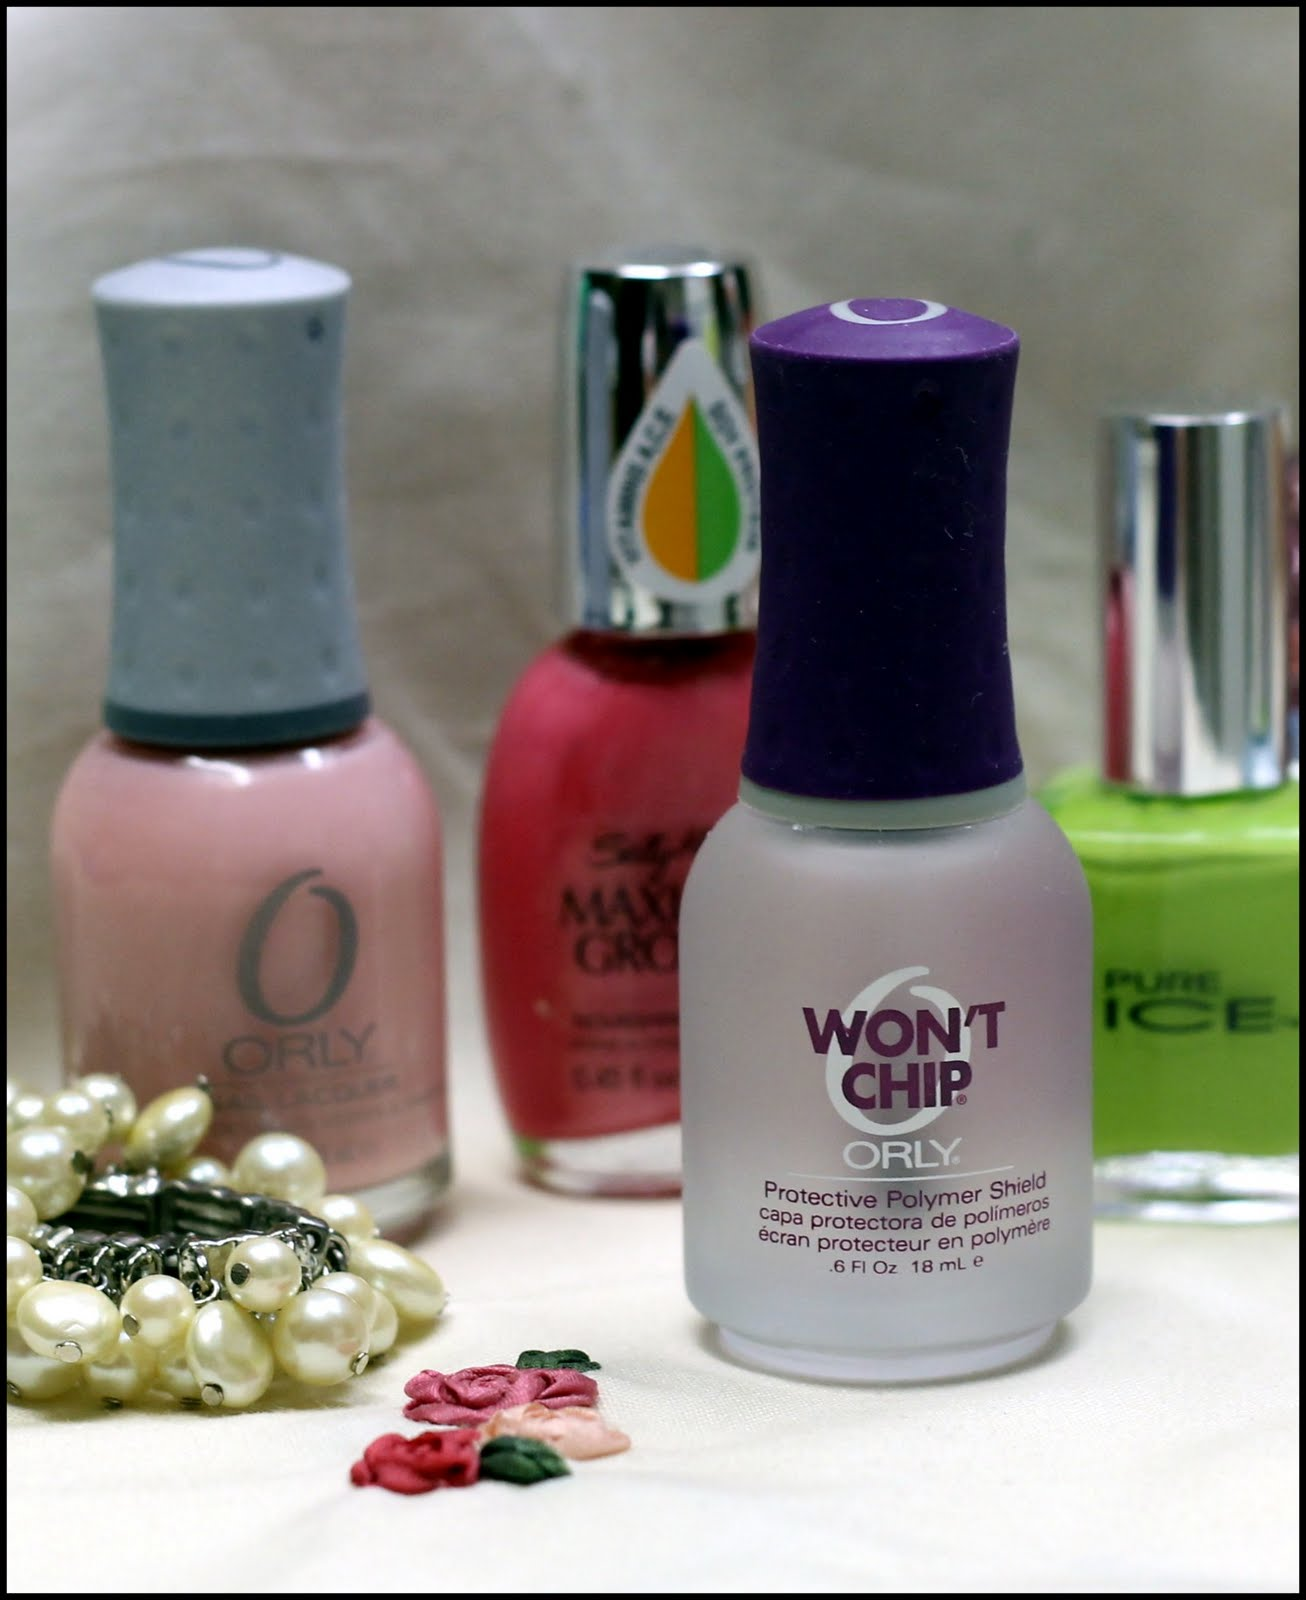 How To Make Nail Polish Not Chip: Scatter Sunshine: Orly Won't Chip Nail Polish Review